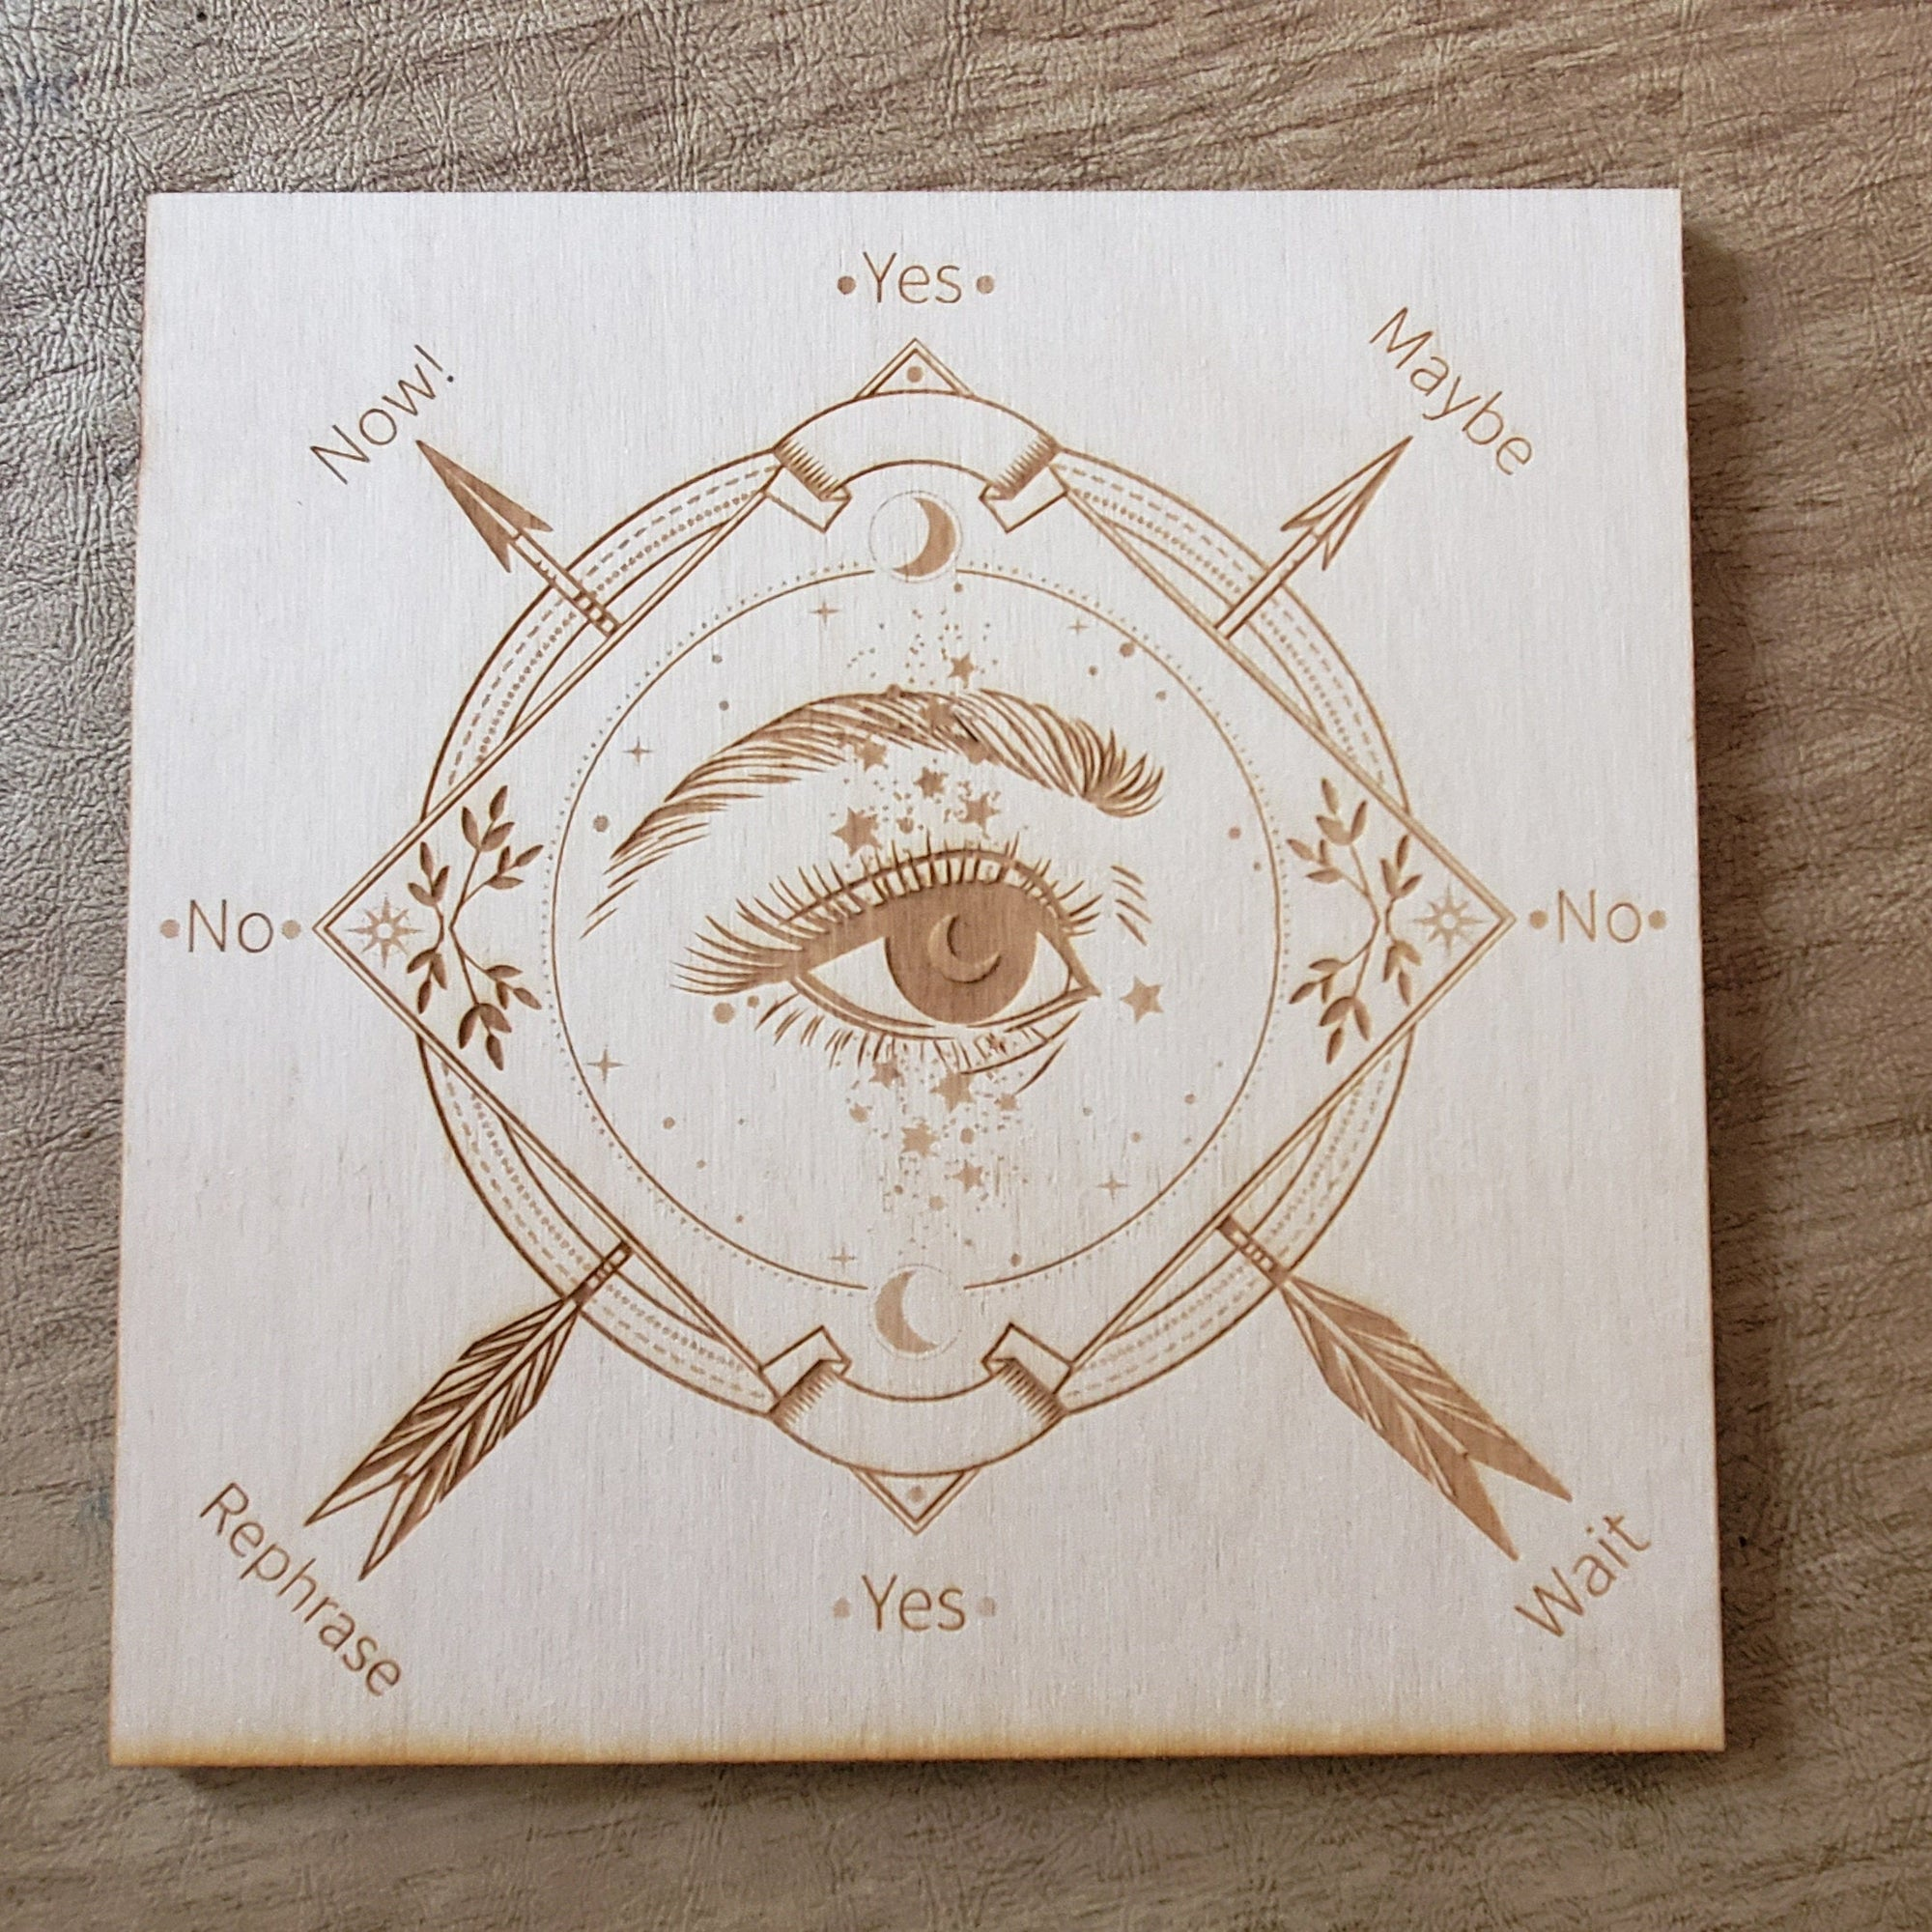 Wood Engraved Pendulum Board #3 Crystal Grid